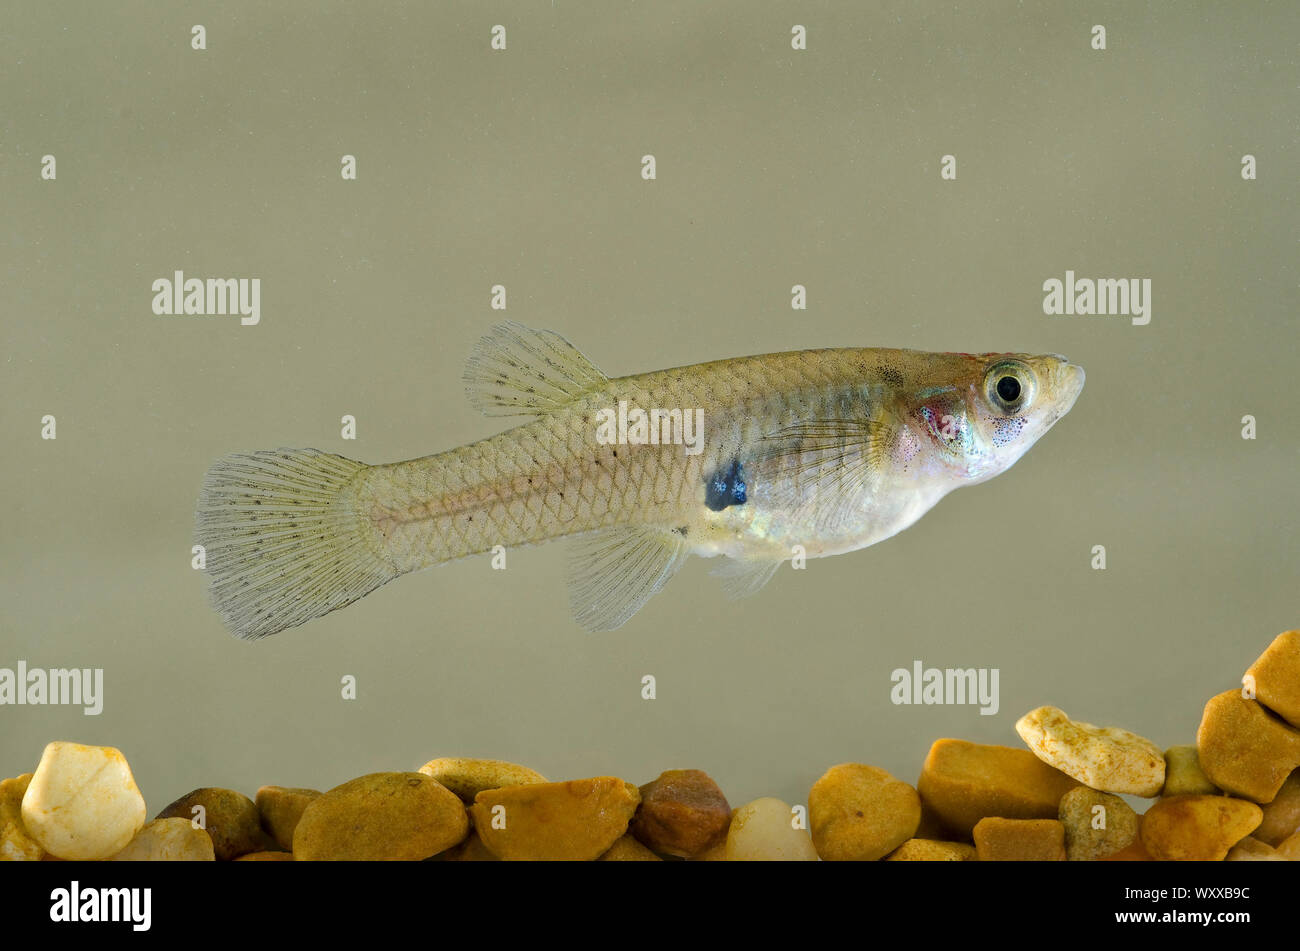 Western Mosquito Fish (Gambusia affinis) are used as a biocontrol agent to reduce mosquito populations. In some instances the fish are responsible for Stock Photo